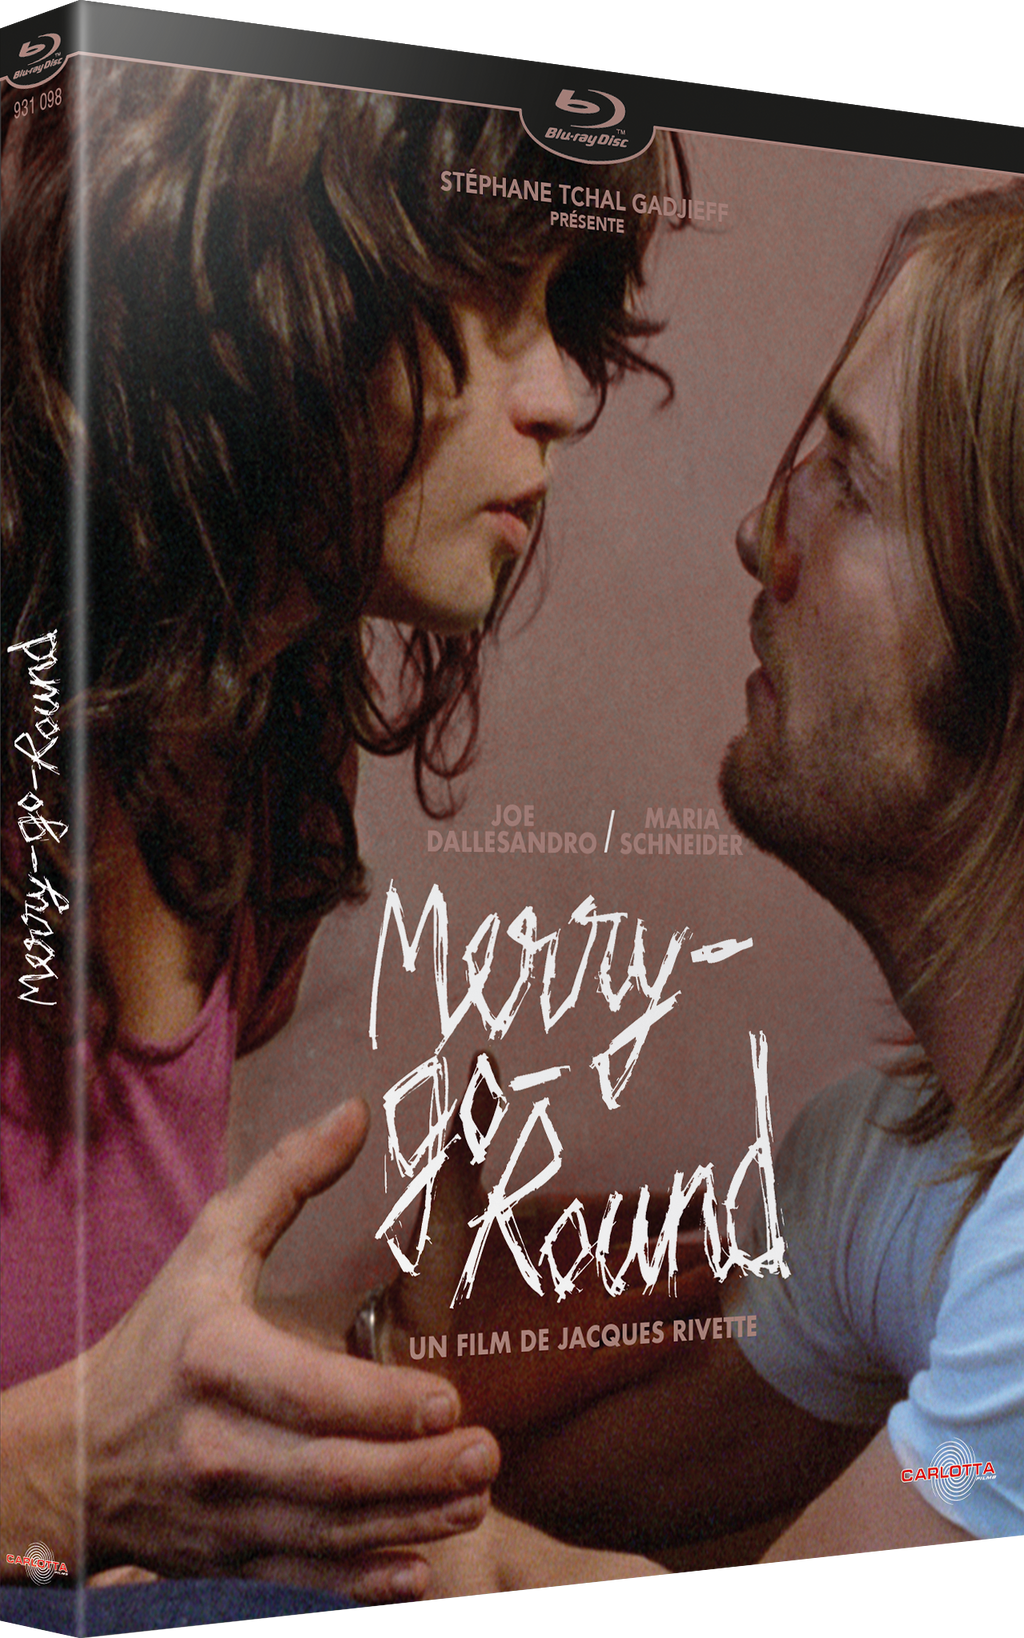 Merry-Go-Round de Jacques Rivette - CARLOTTA FILMS - La Boutique